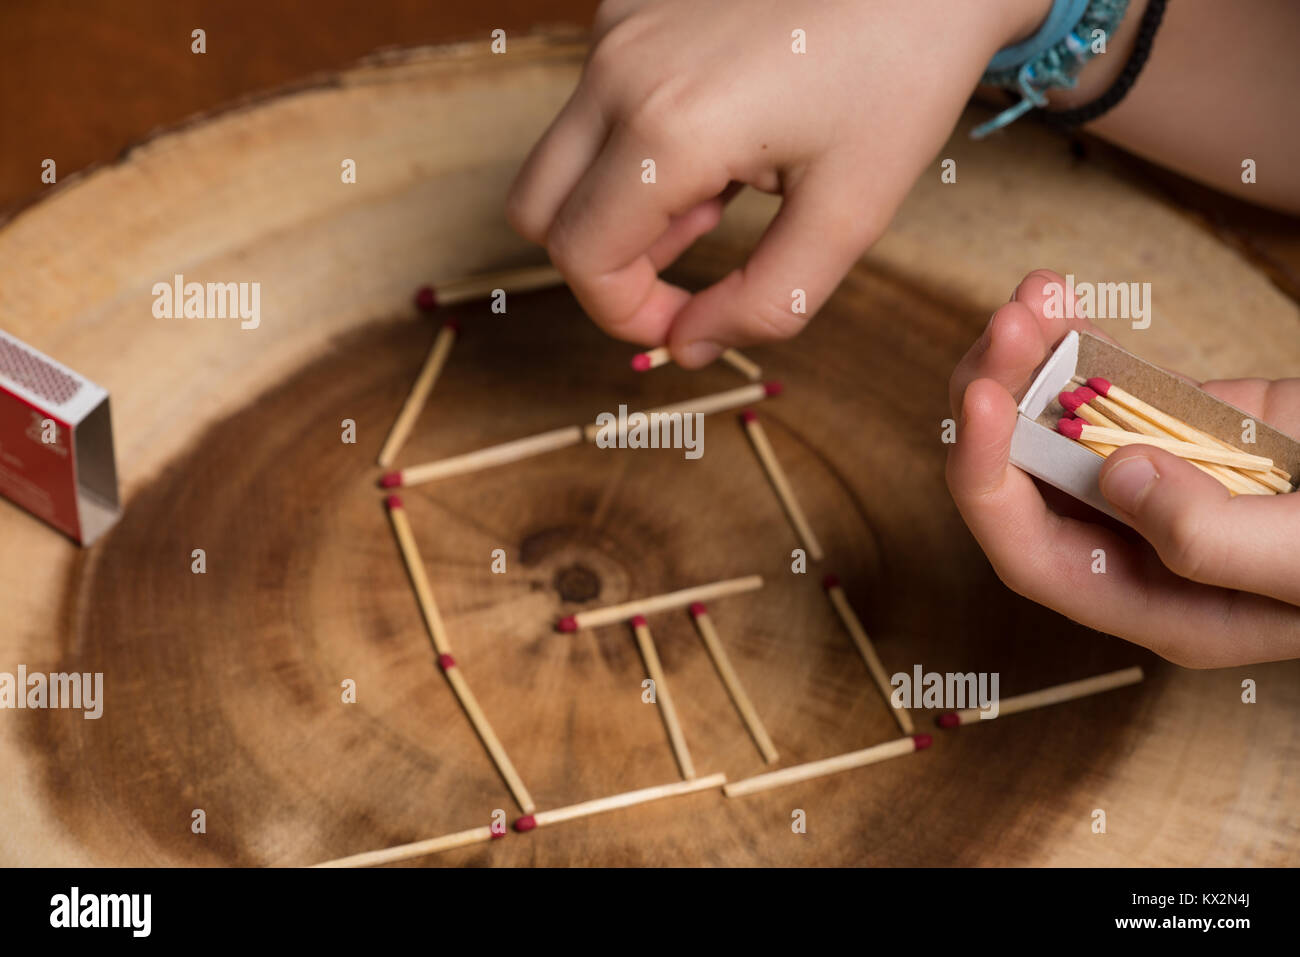 Child playing with matches. - Stock Image